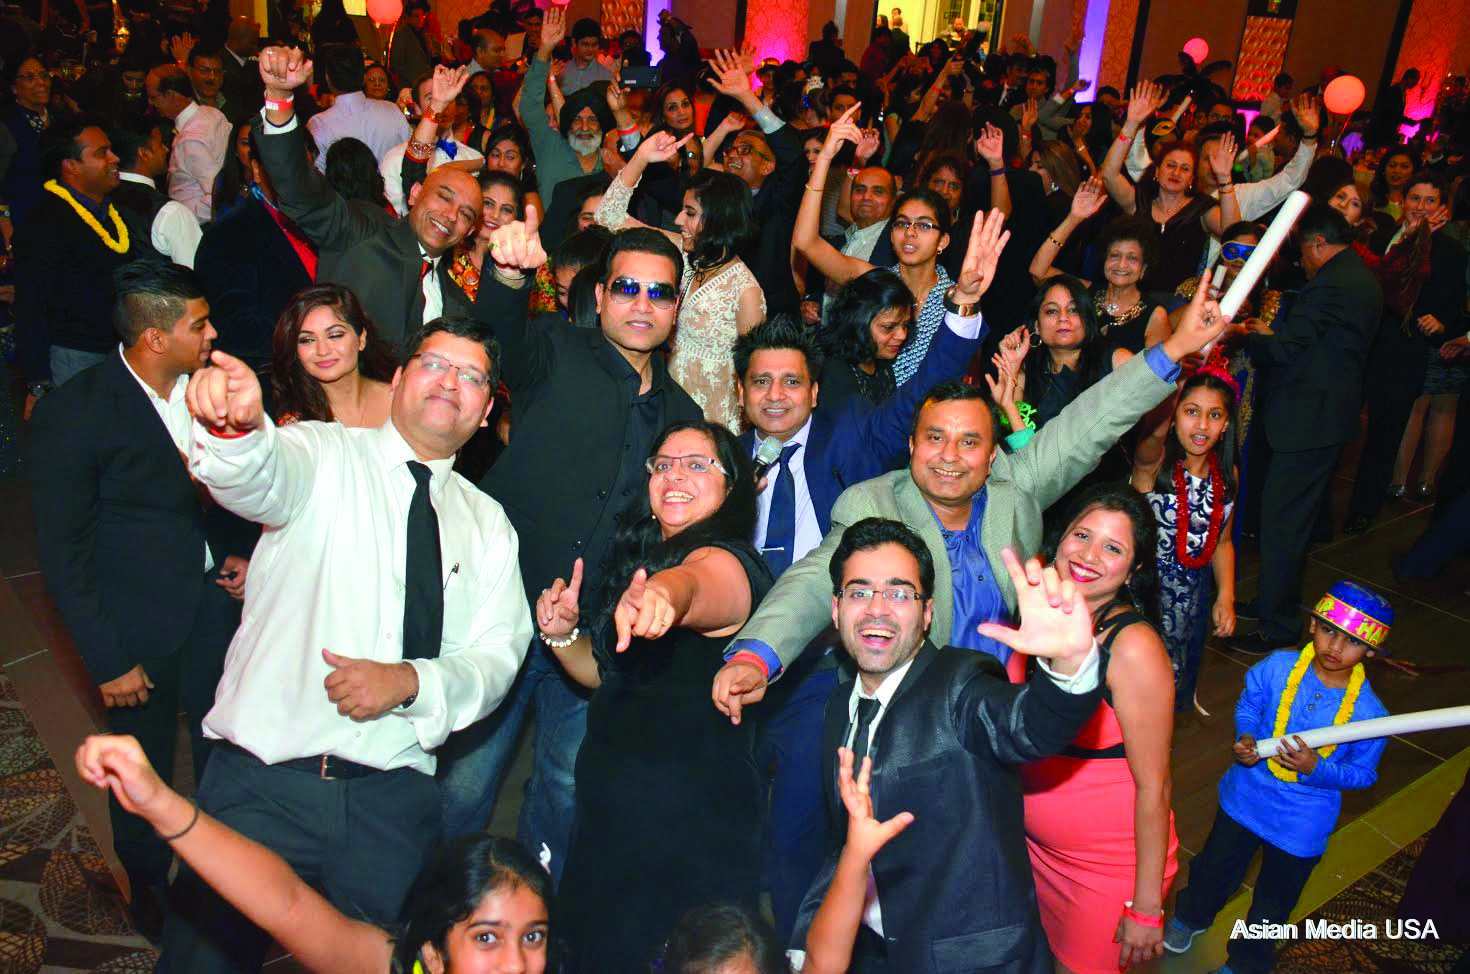 chicago-new-year-eve-masquerade-ball-attracts-many-from-midwest-2